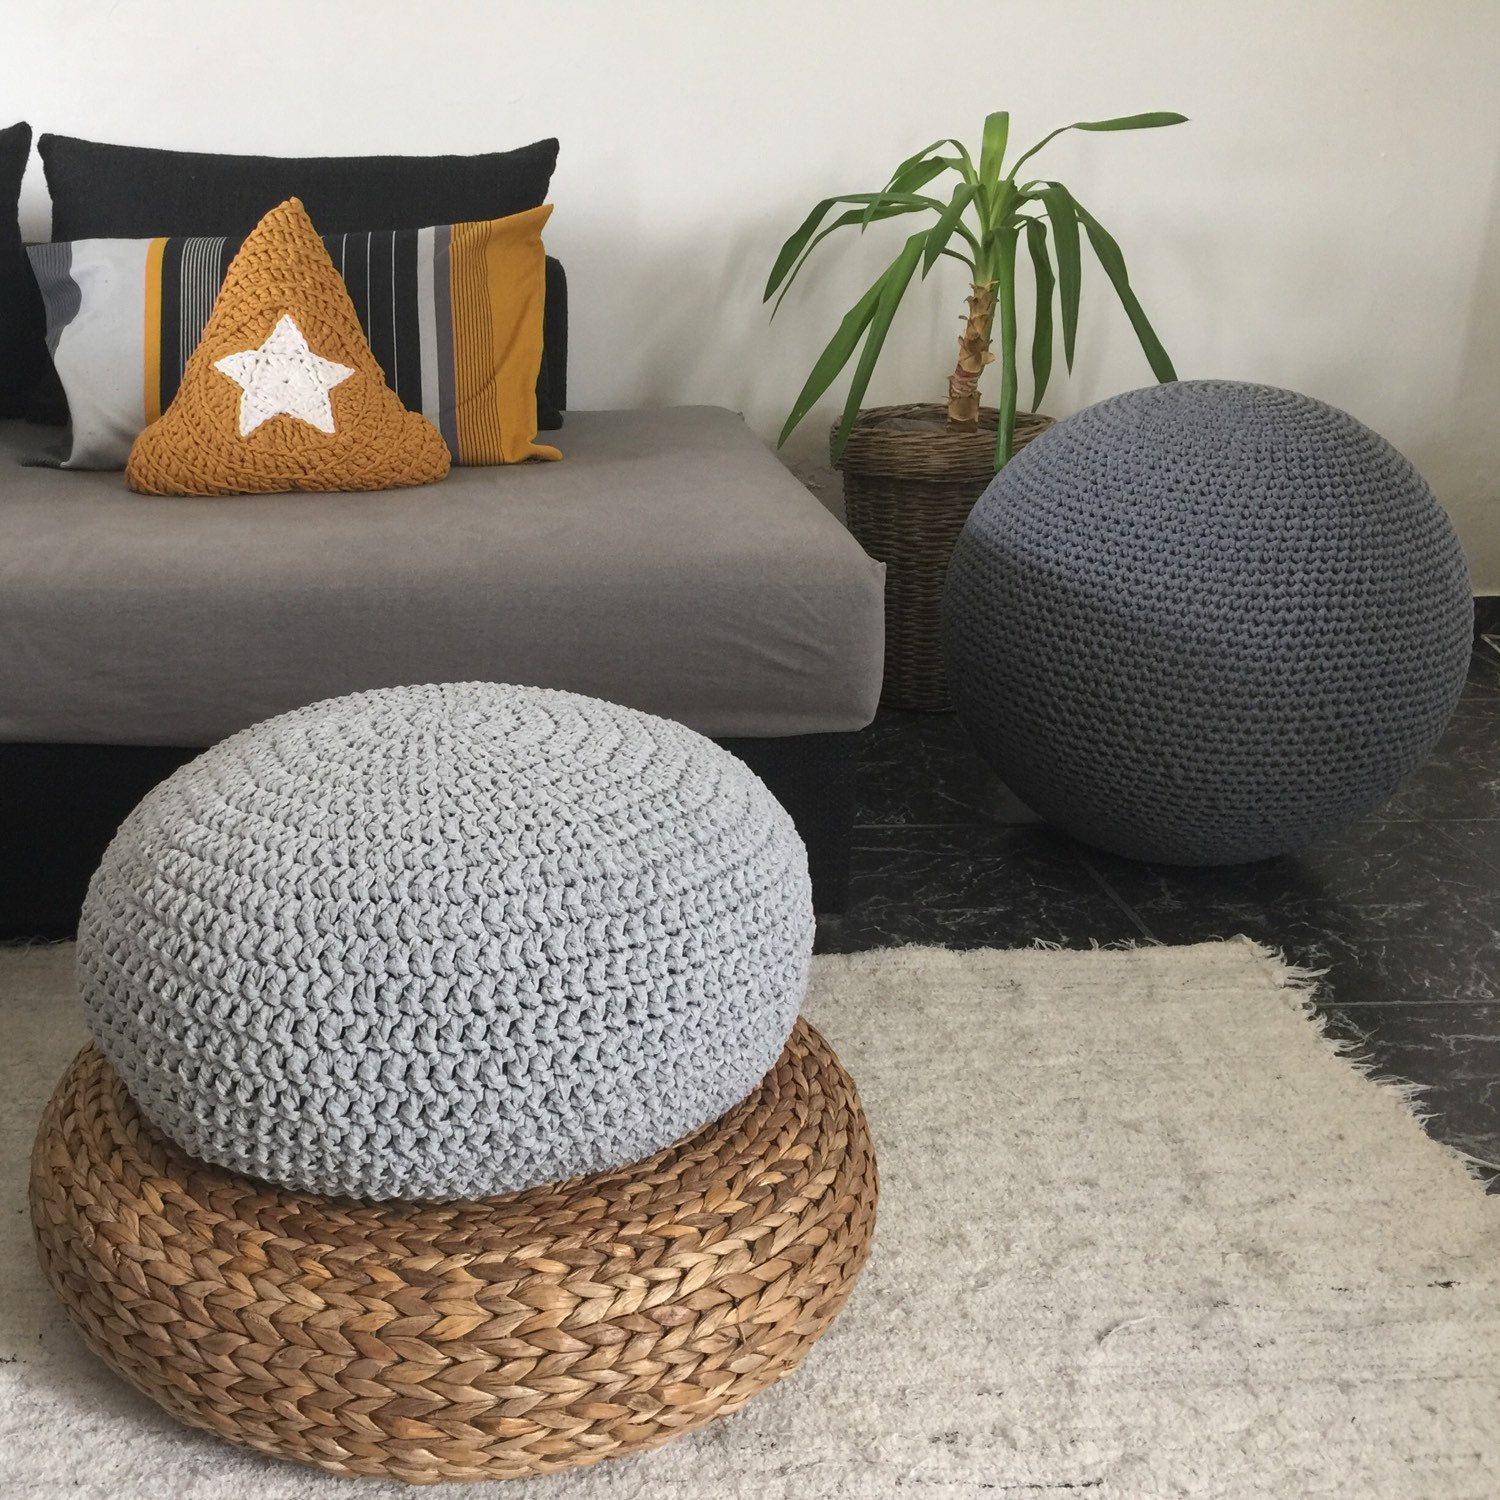 Large Meditation Cushion, Round Pillow Seating, Giant Knit Pouffe ...